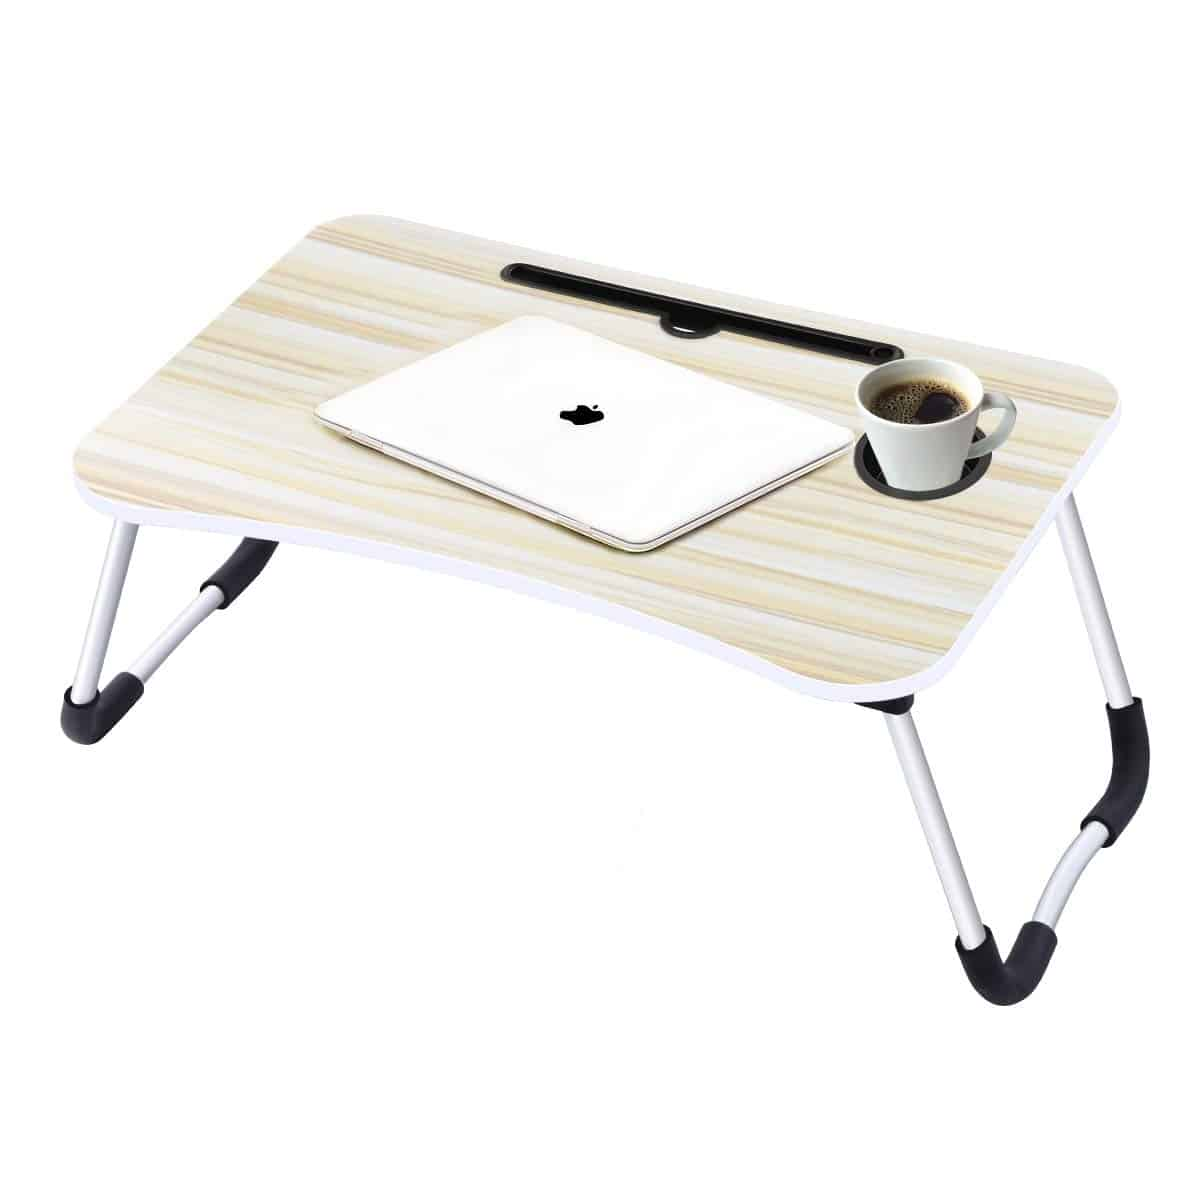 Laptop Desk,Laptop Bed Tray Table Large Foldable Laptop Notebook Stand Desk